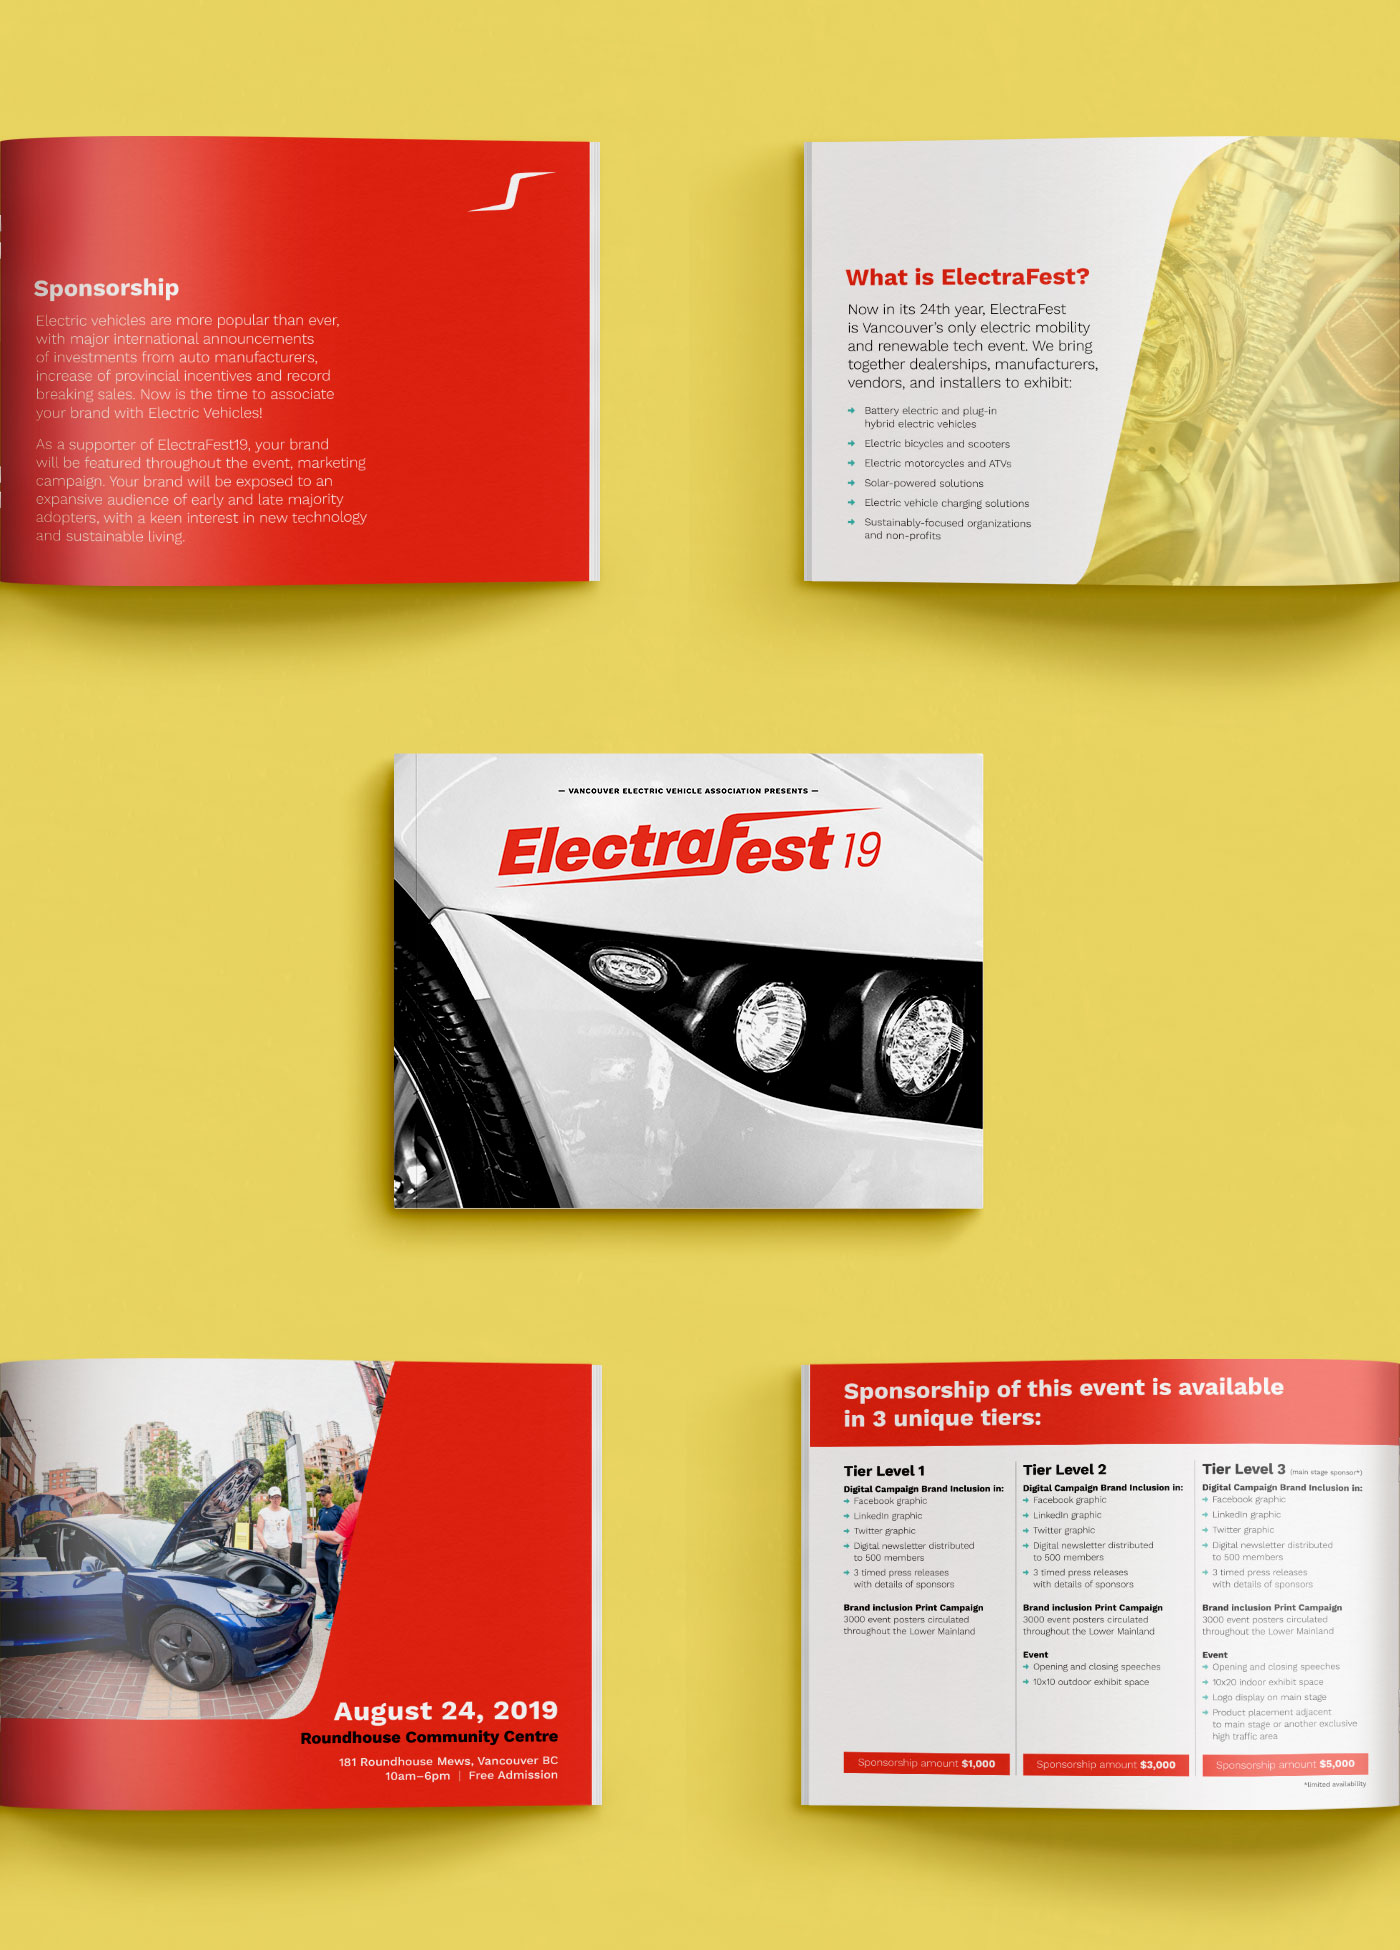 ElectraFest sponsorship package layout and design by marketing collective, Flipside Creative.